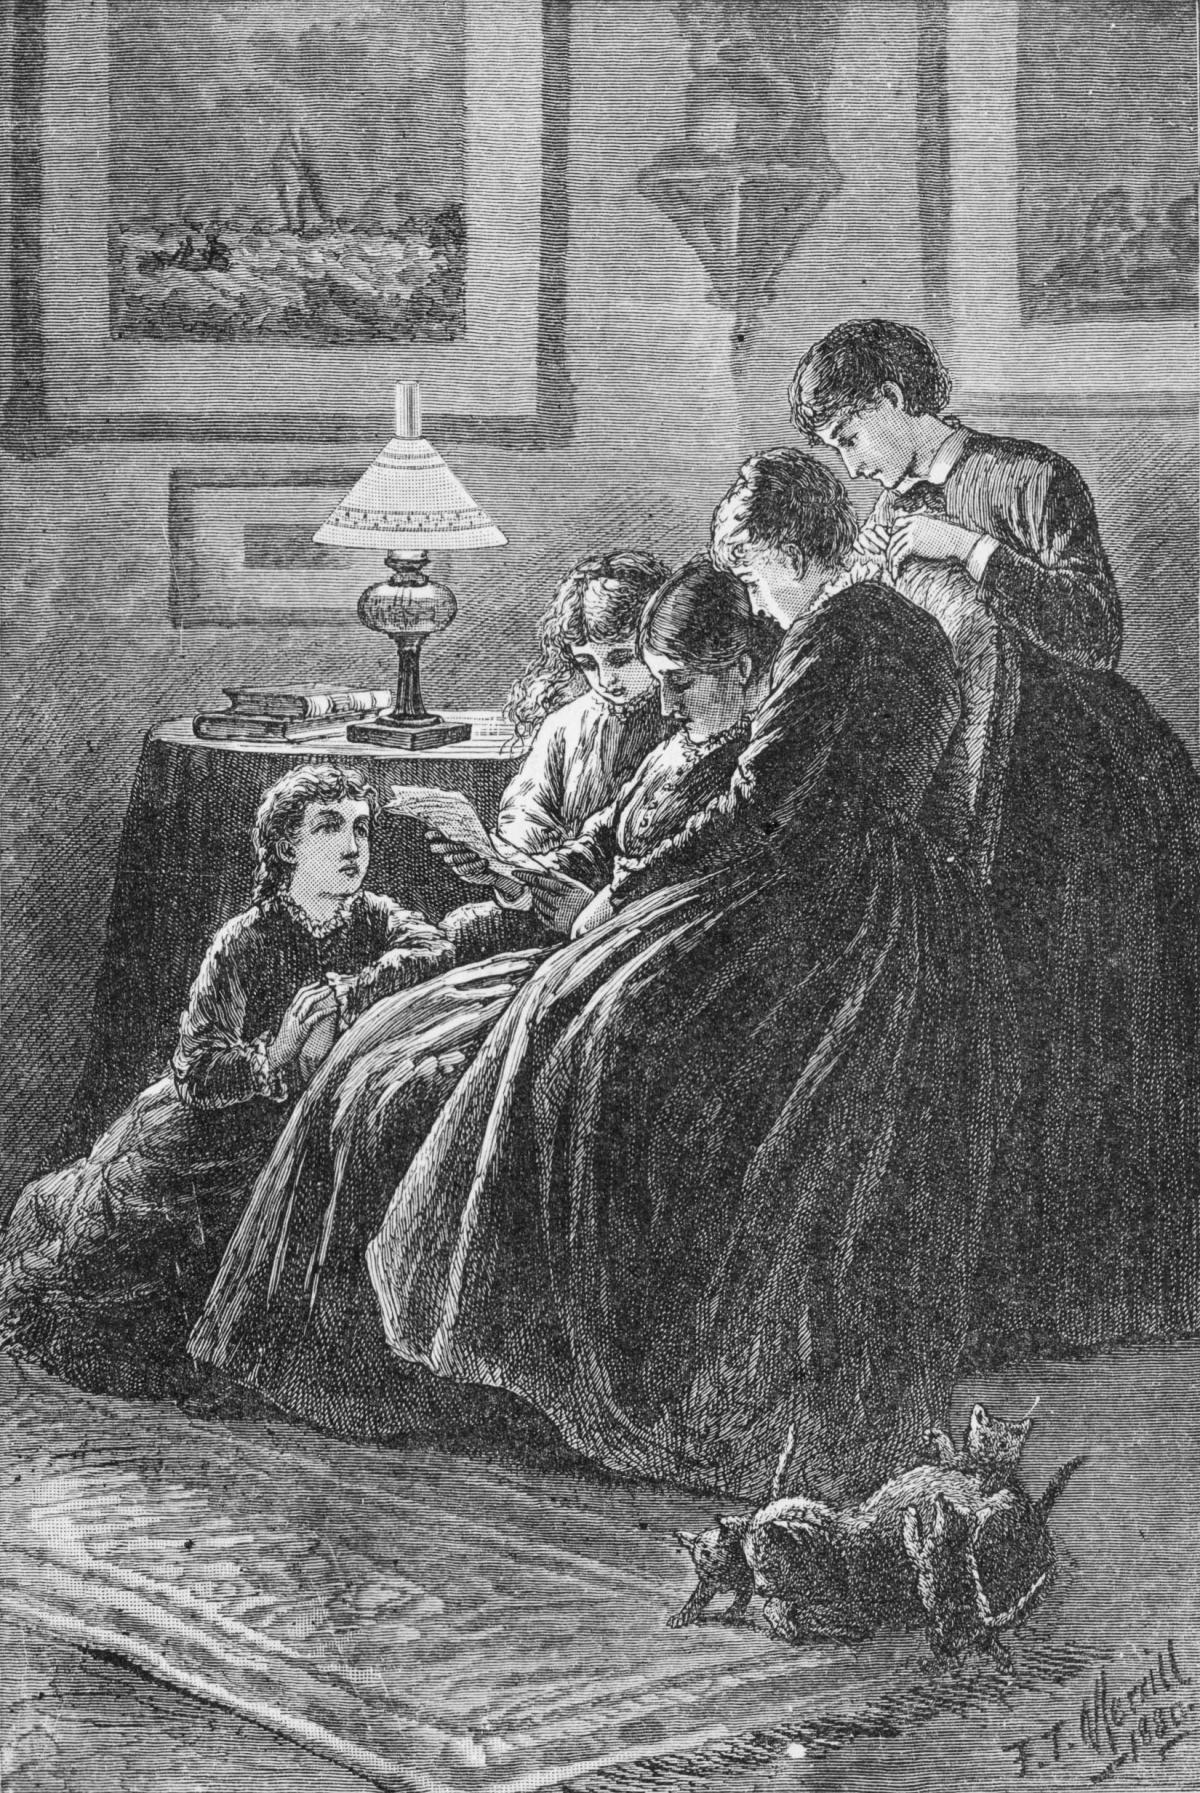 The four girls crowd around Marmee, who is reading a piece of paper and sitting in a chair, in a room lit by a small triangular table lamp